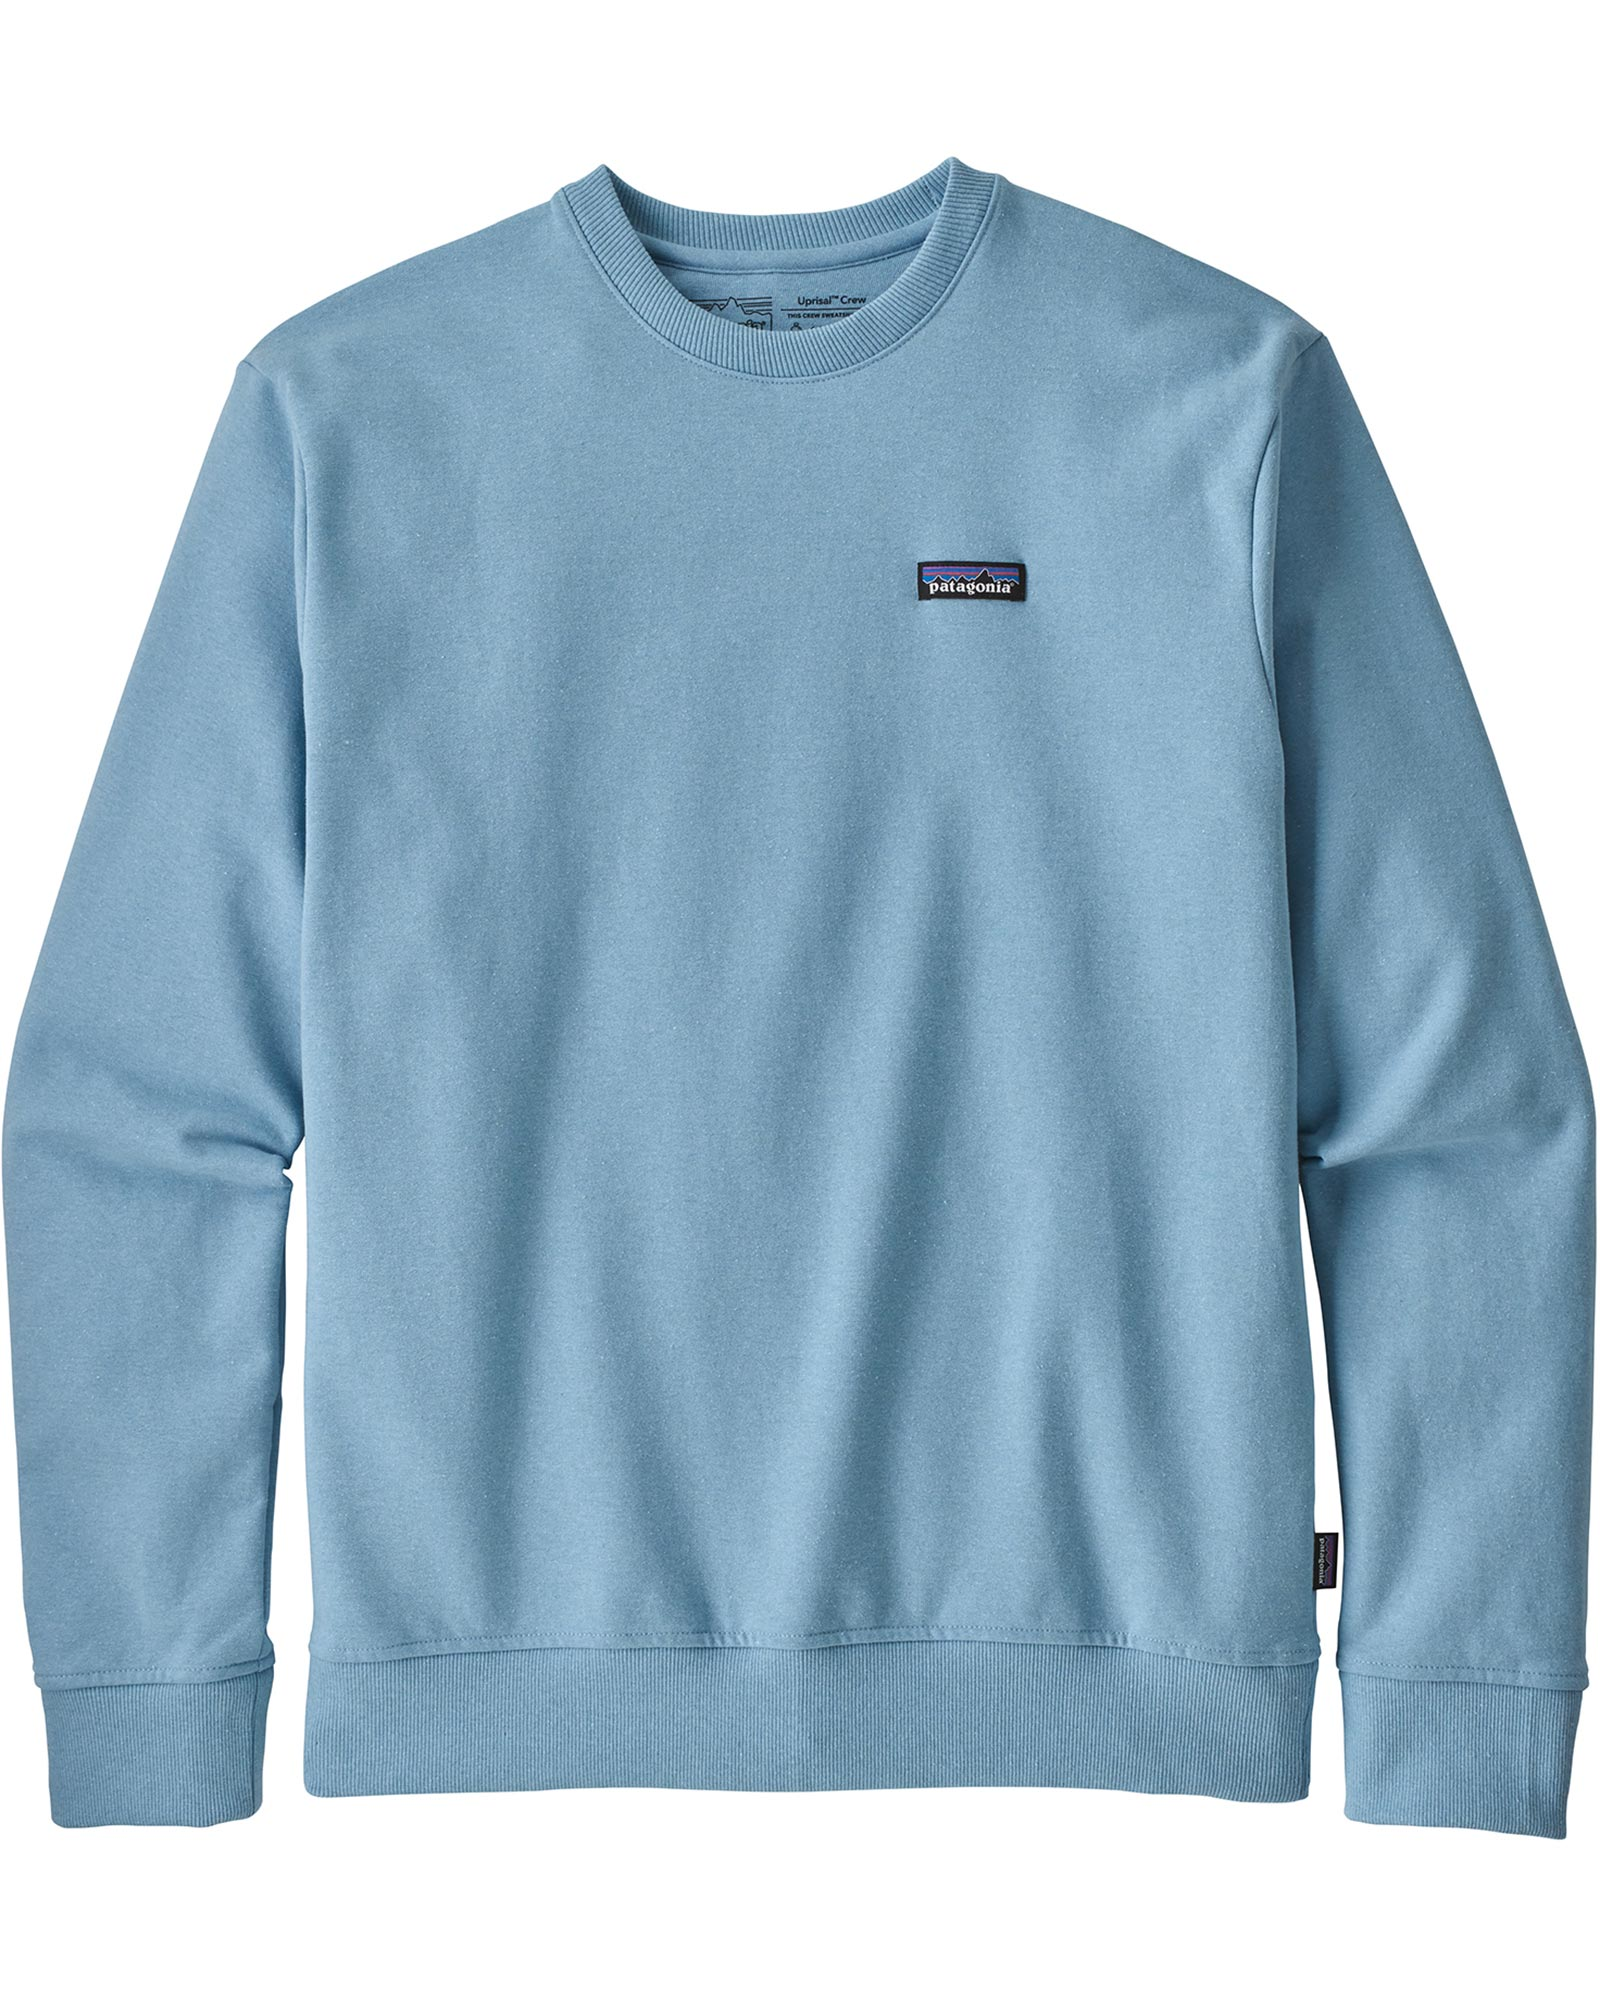 Patagonia Men's P-6 Label Uprisal Crew Sweatshirt 0